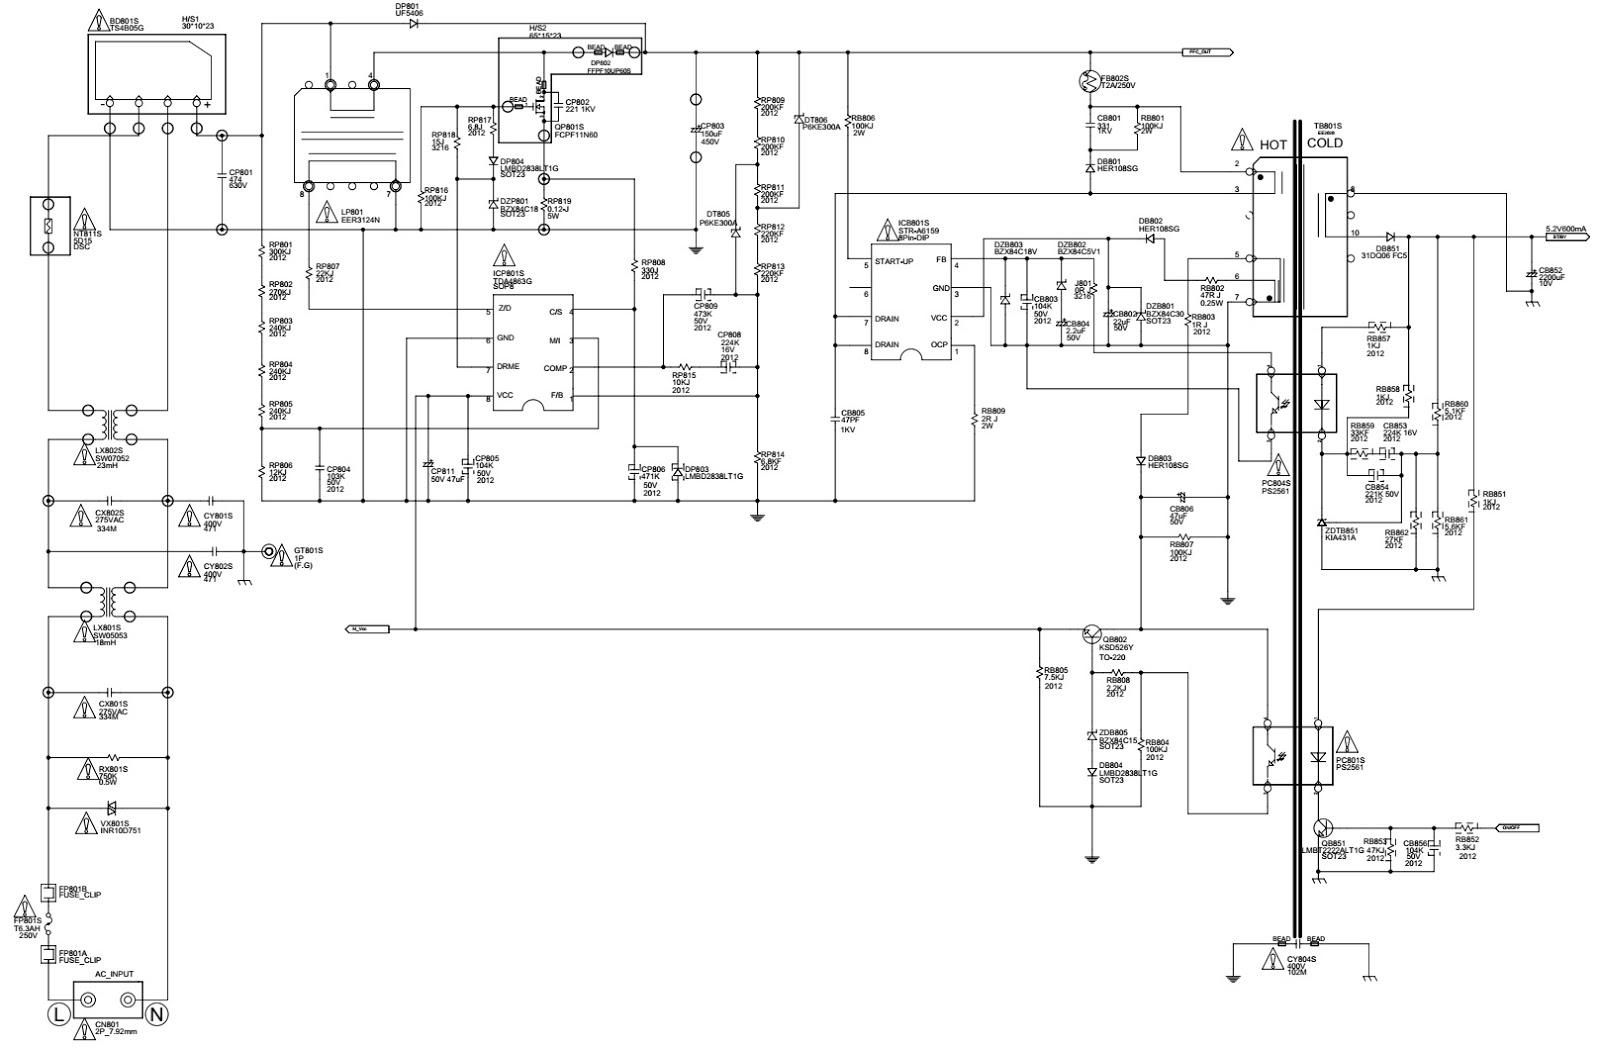 Bn44 00192a Samsung Universal Power Supply For Lcd Tvs Circuit Negative Dual Powersupplycircuit Diagram Schematic Click On The Pictures To Magnify